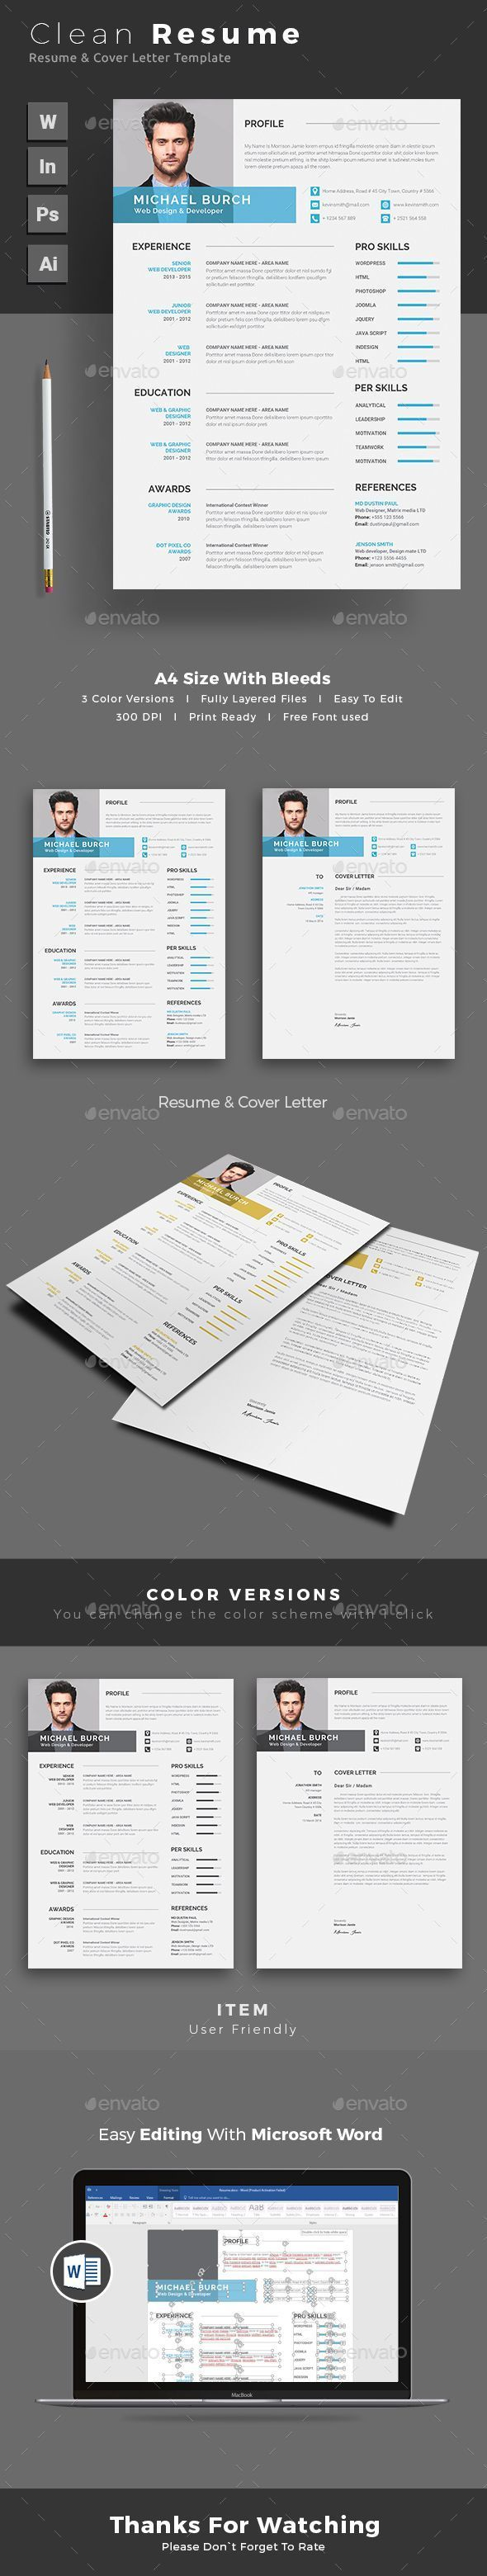 dallas resume service%0A Resume